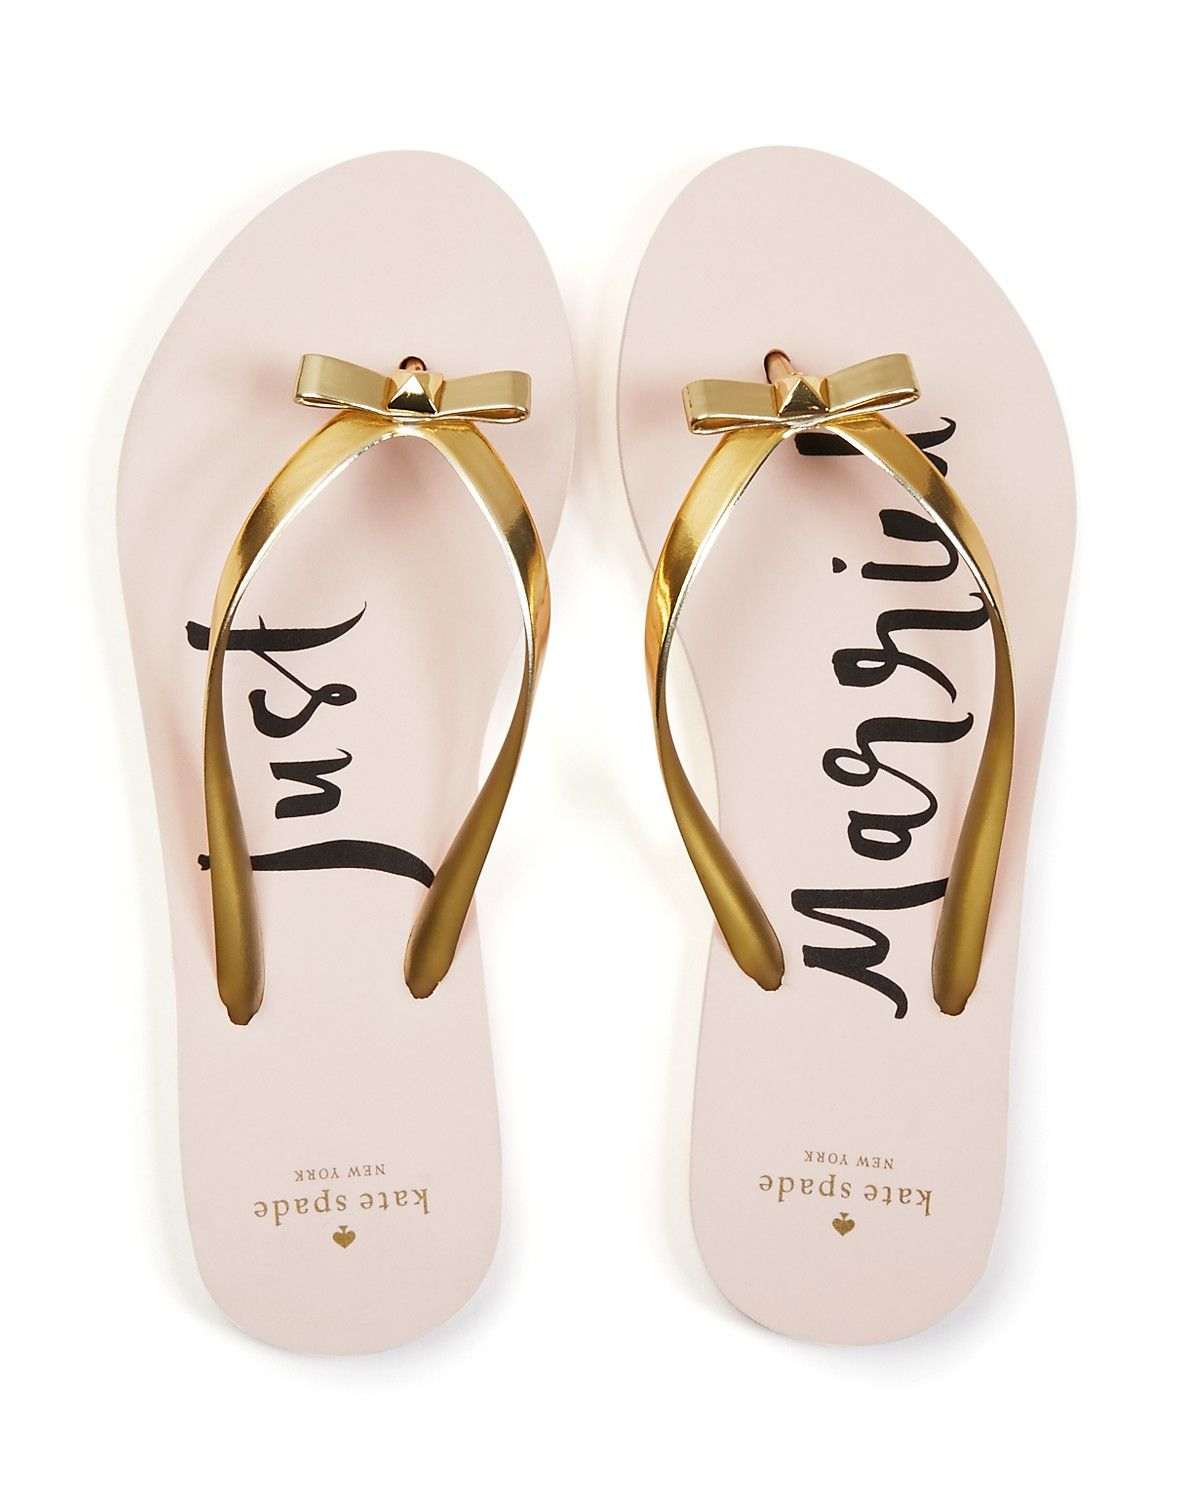 c6aec25e2 kate spade new york Nadine Just Married Flip Flops